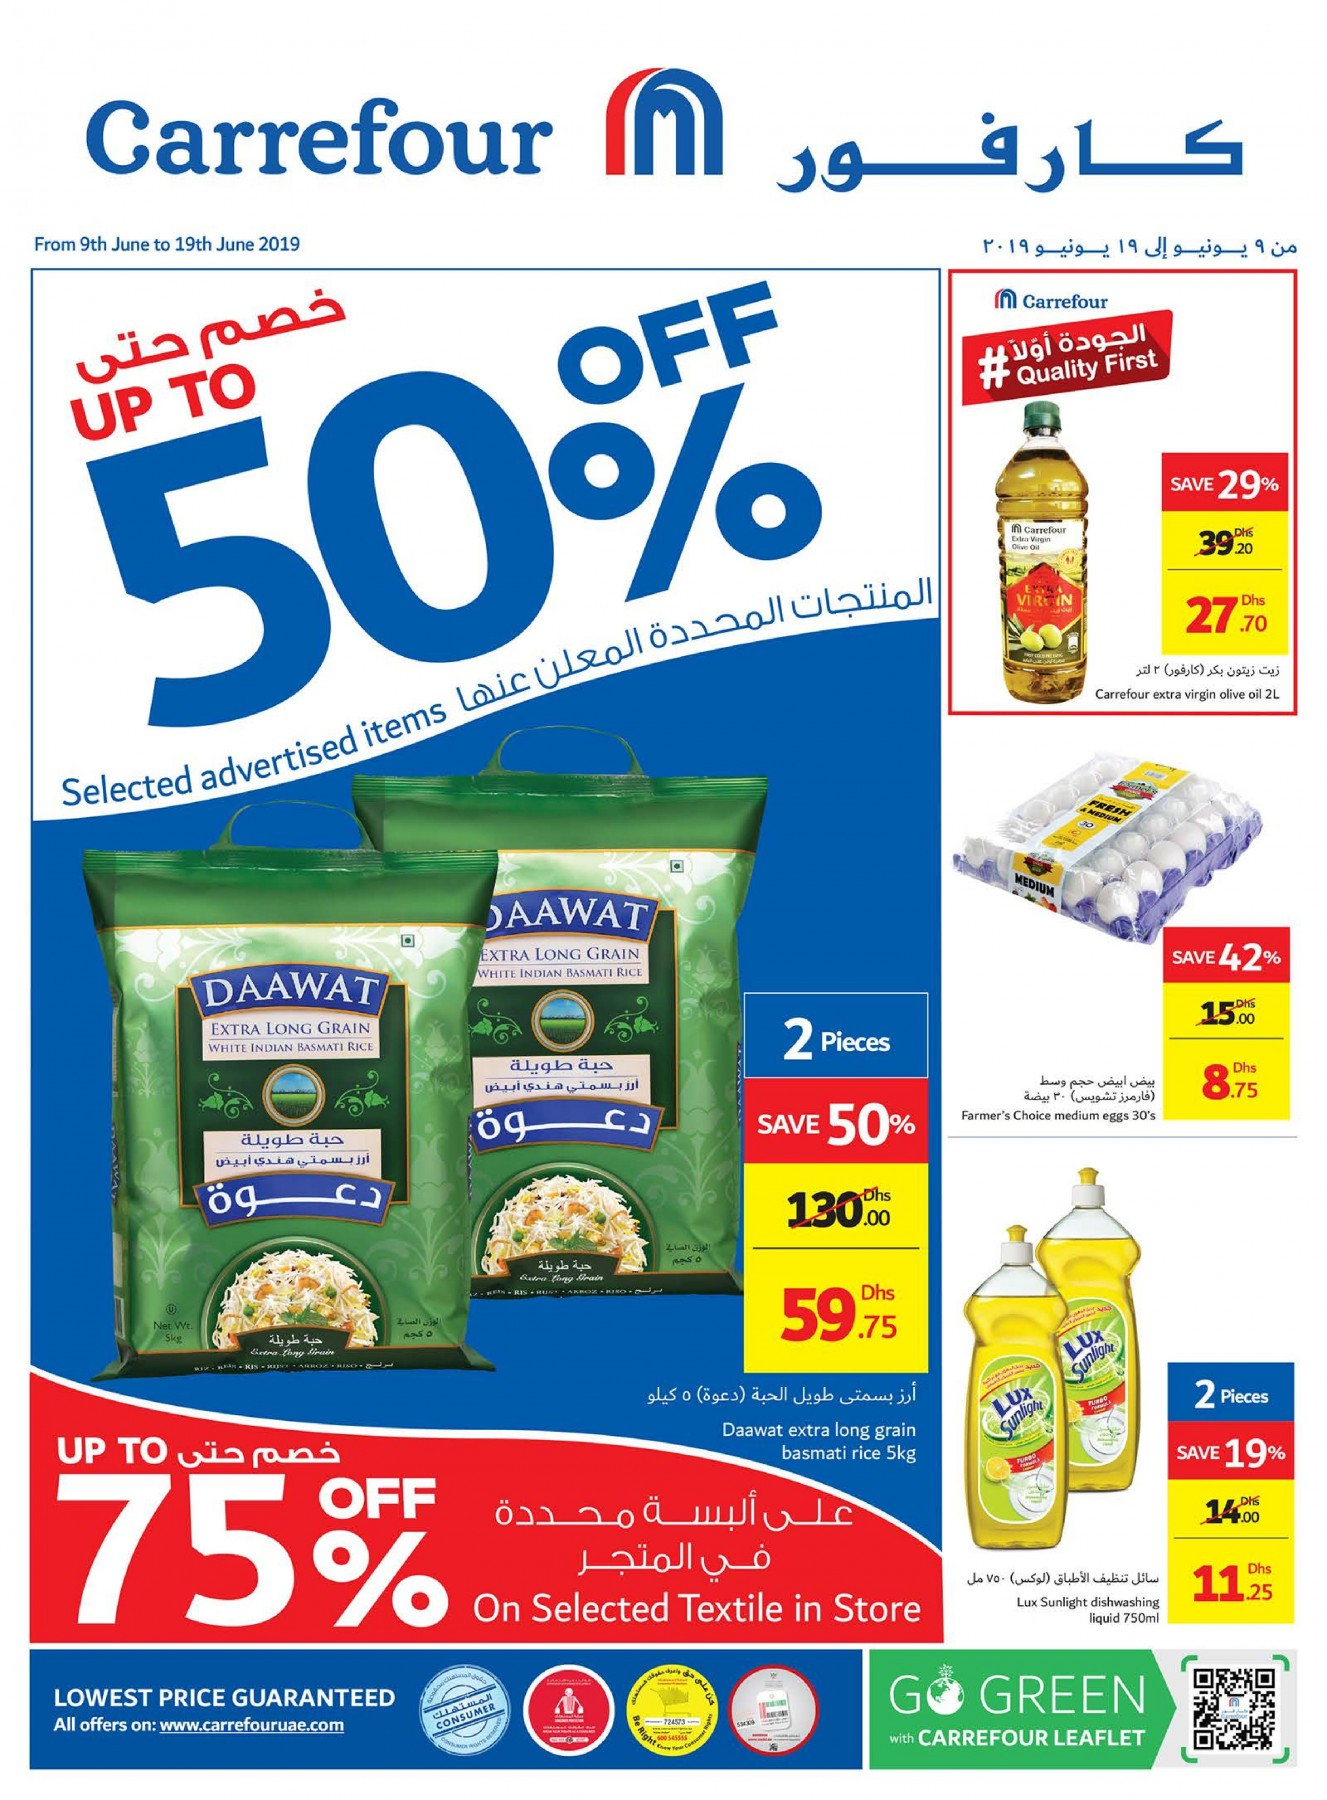 Carrefour UP TO 50% OFF Offer - Promotionsinuae